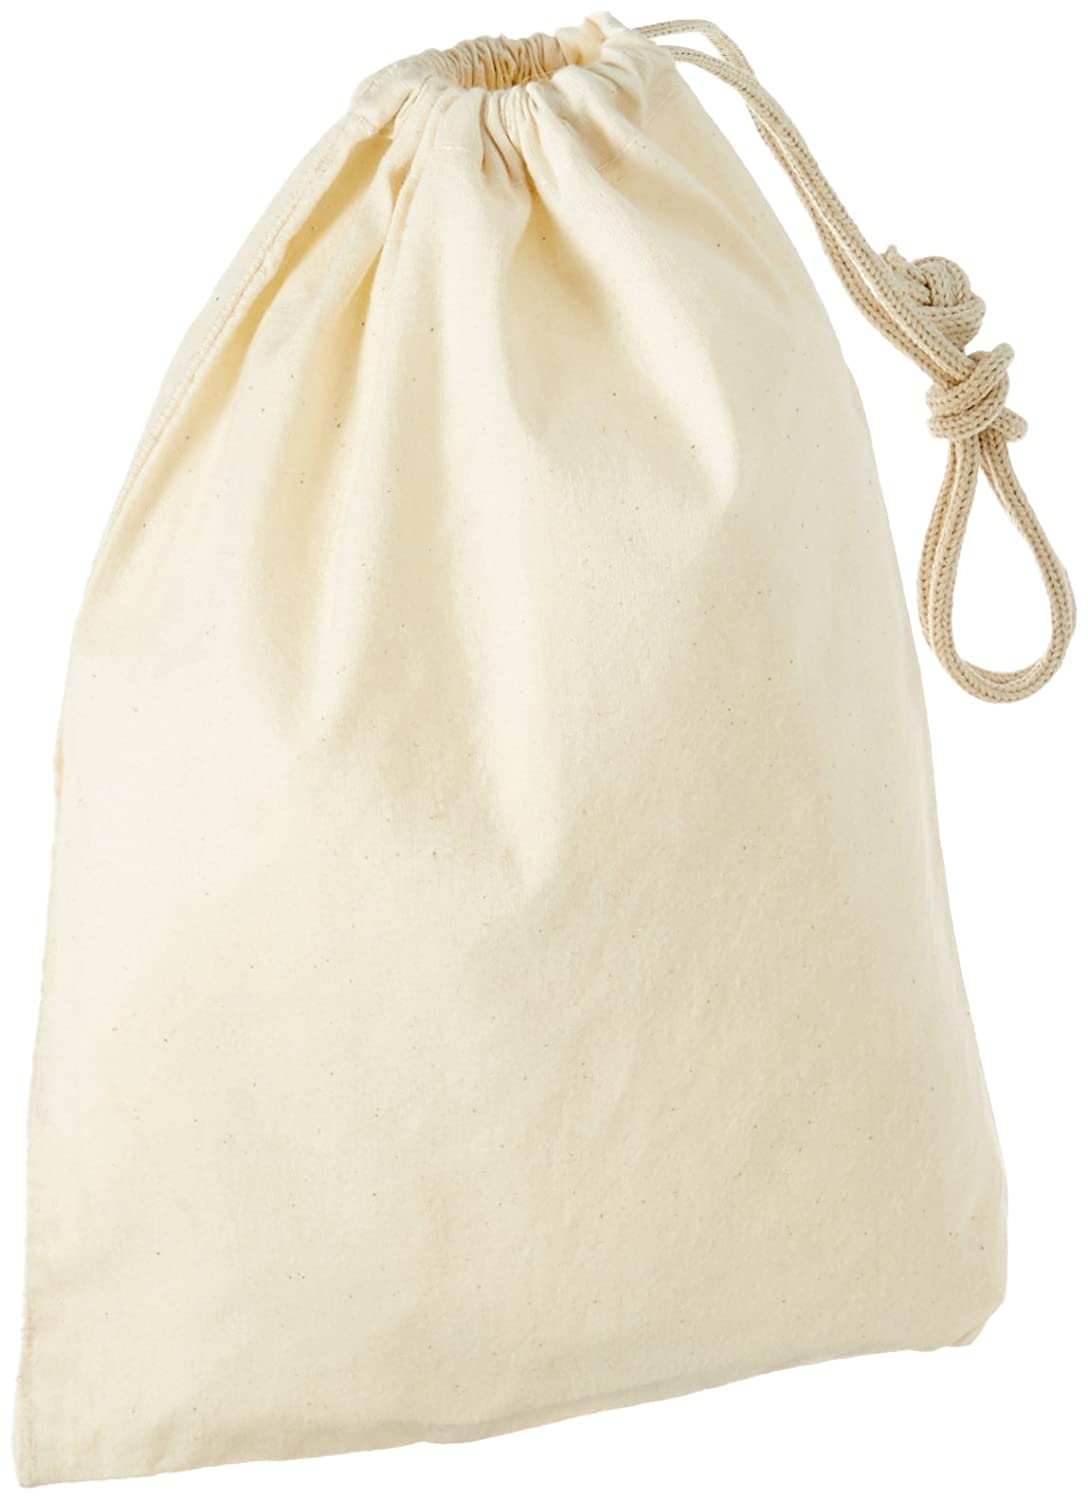 8 by 12 5 Pack 8 by 12 MuslimBag8x12/_Pack5 LA Linen 100/% Cotton Durable Drawstring Muslin Produce Storage Bags